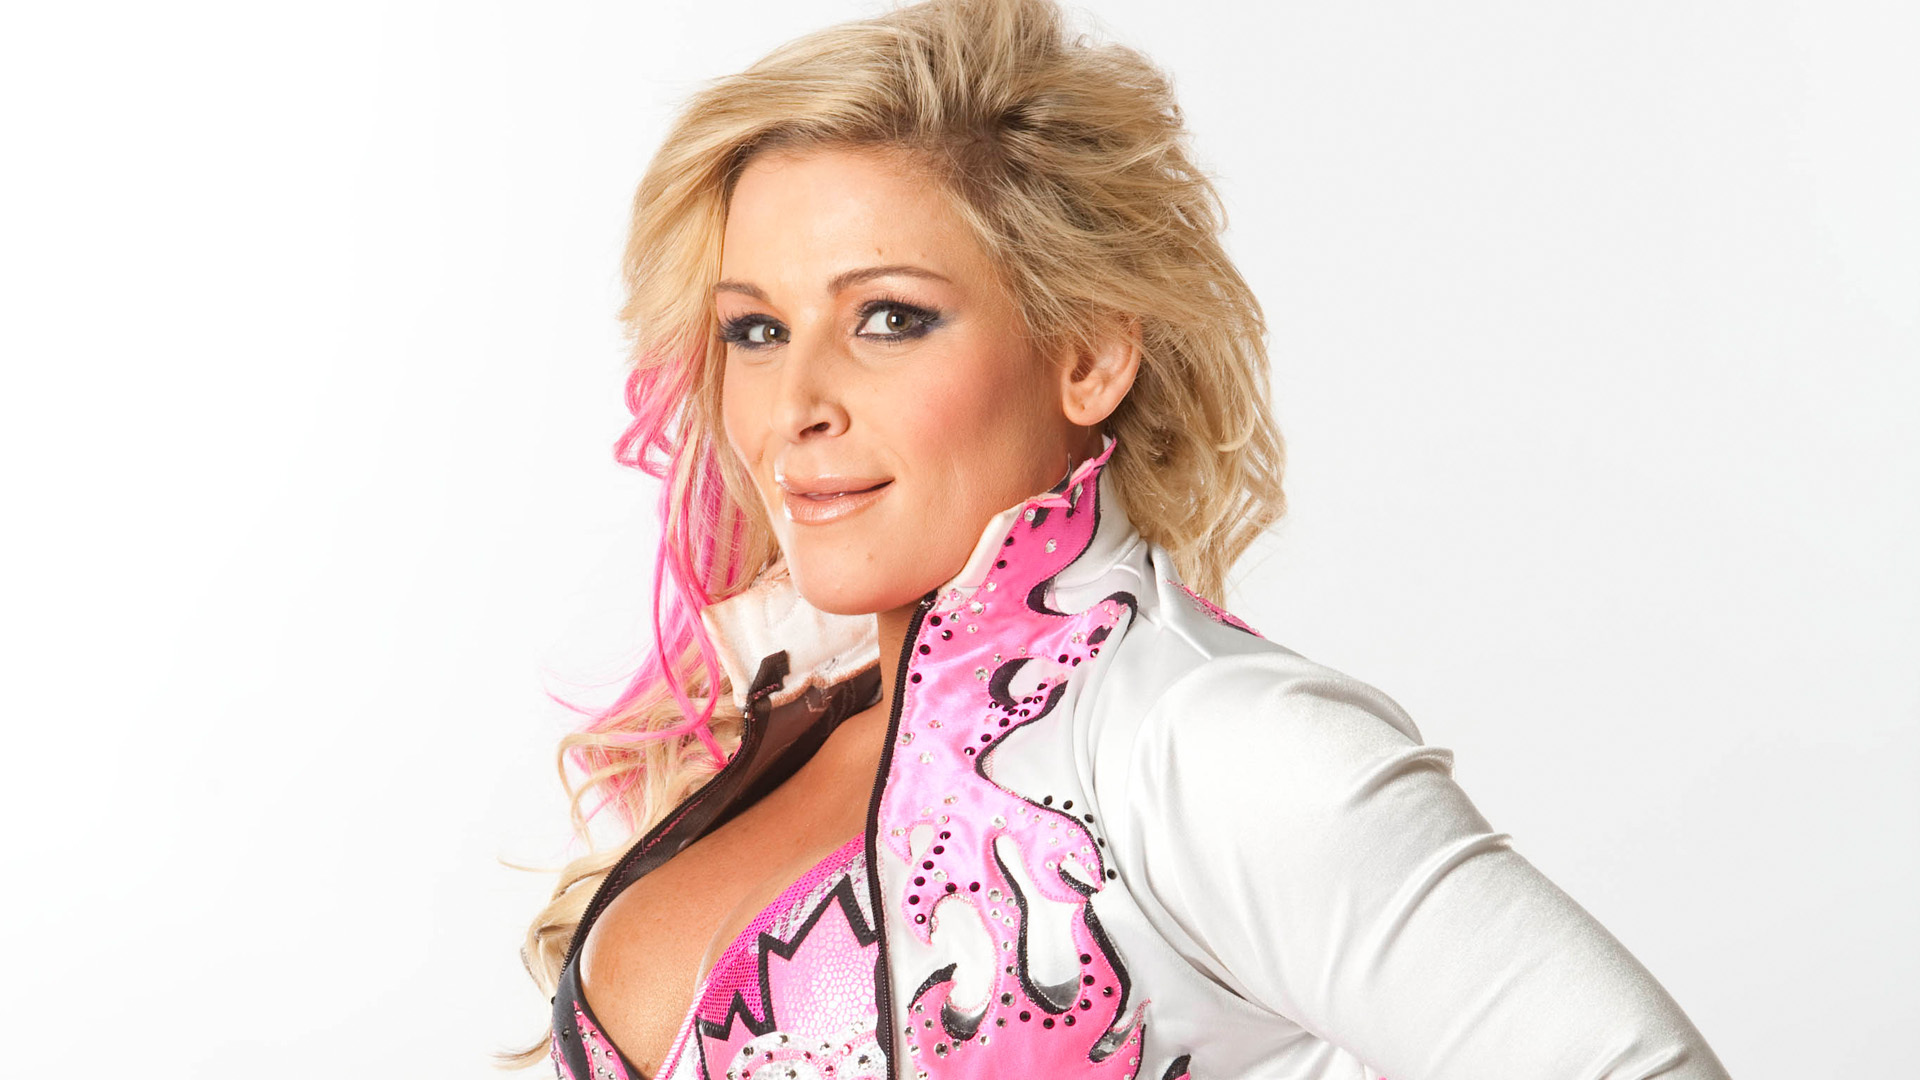 Image search More Hot Pictures from Natalya Neidhart Fakes Images 1920x1080